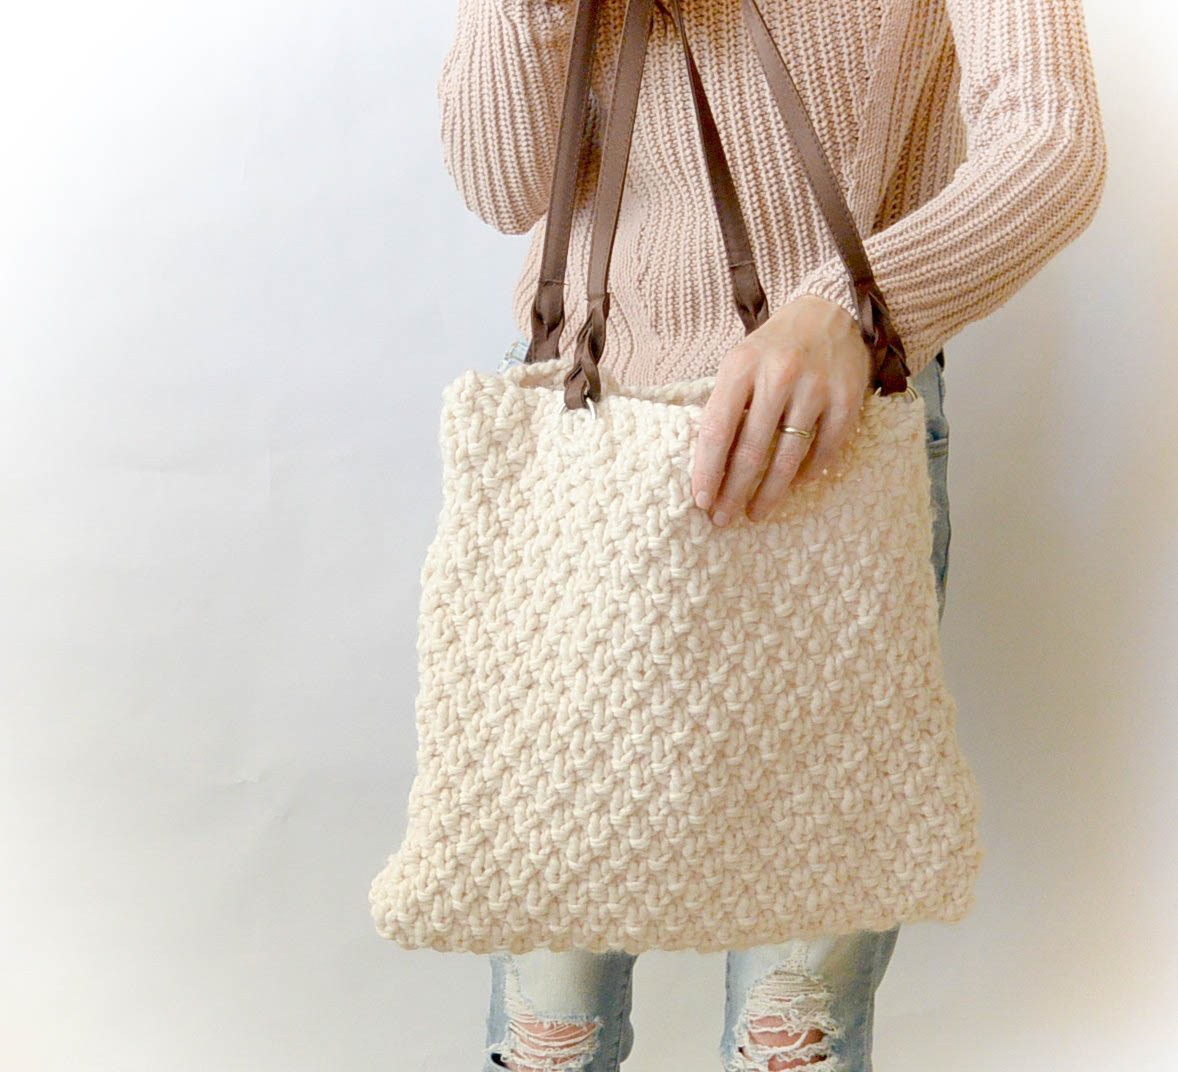 Knitting Bag Pattern : Aspen Knit Bag - Free Knitting Pattern Easy Purse